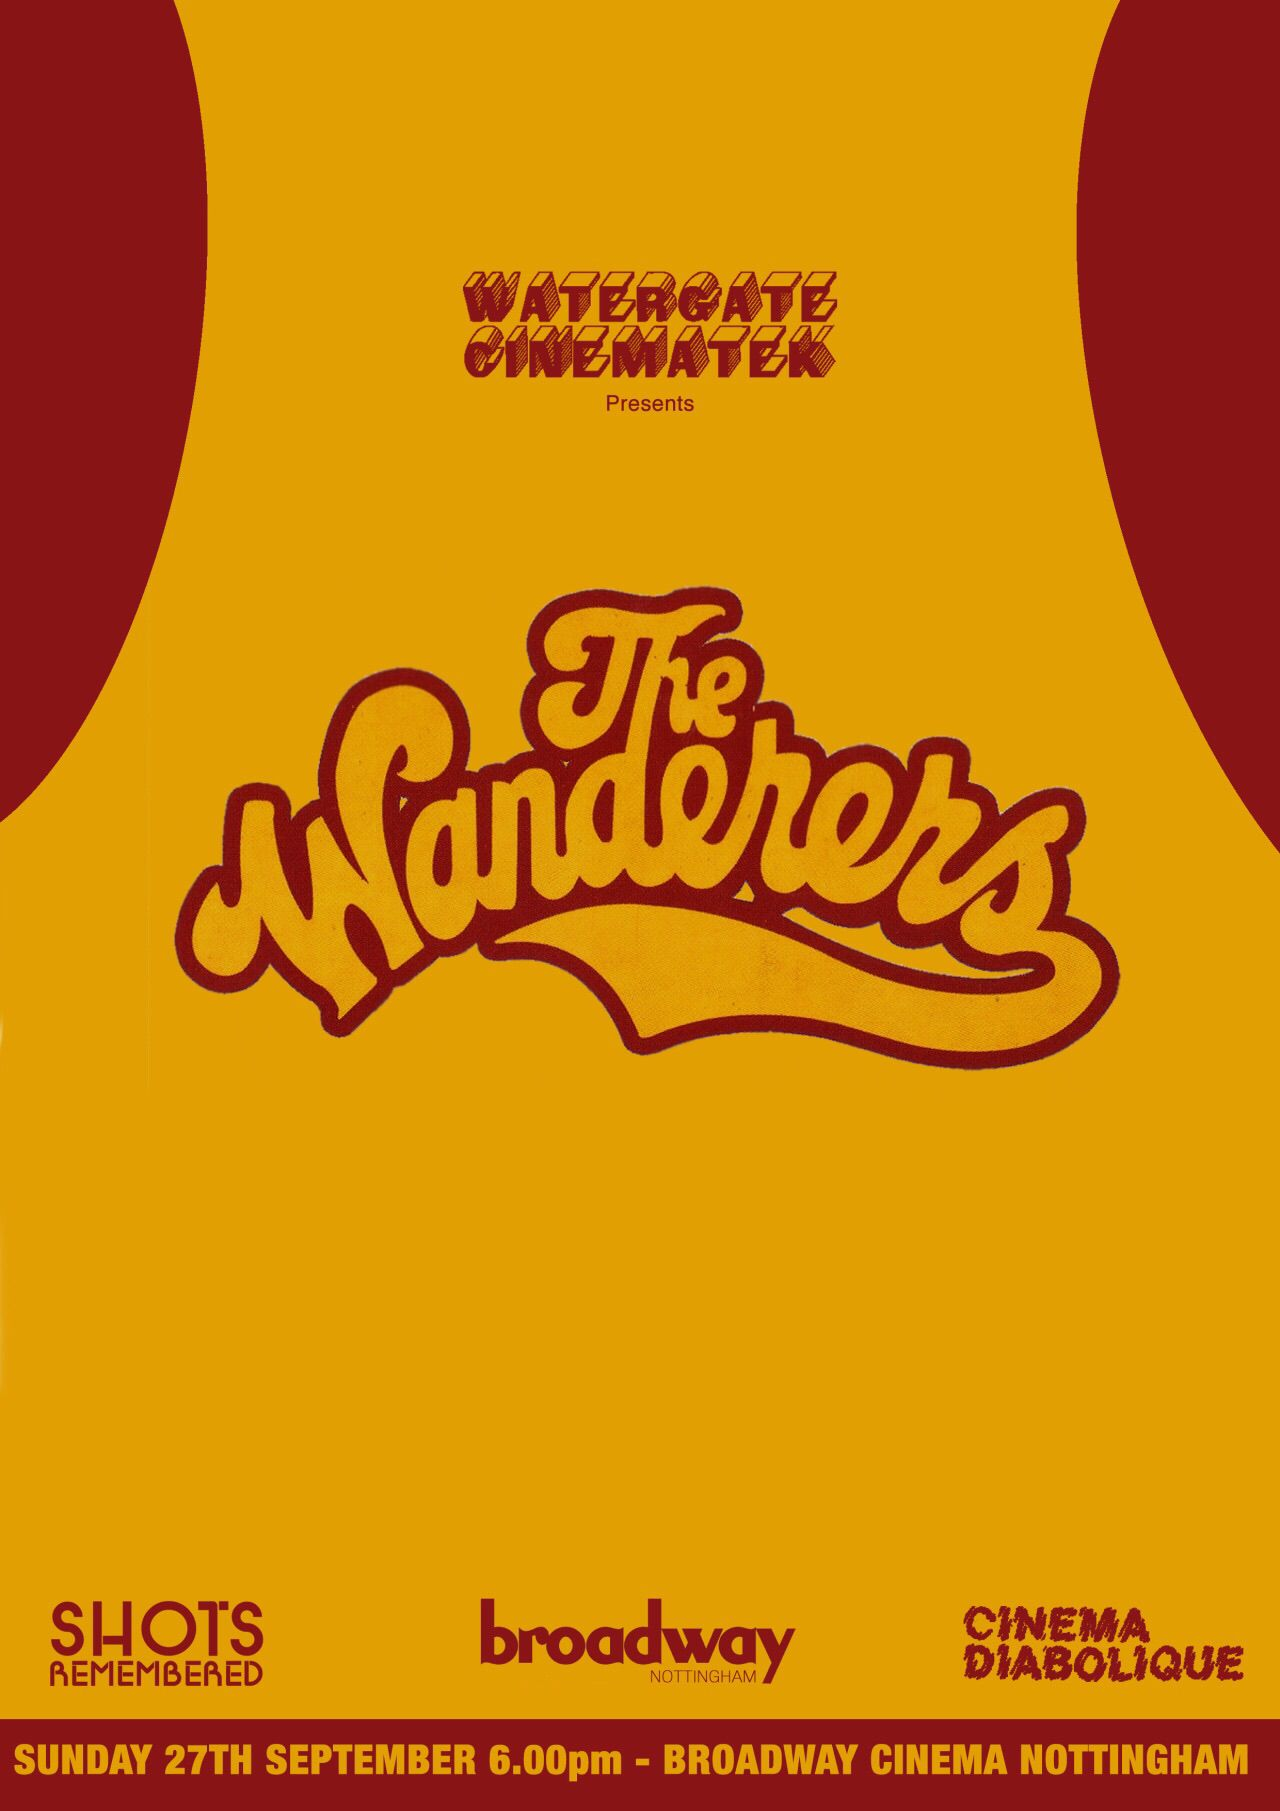 Poster design nottingham - The Wanderers Poster Design Watergate Cinematek Shots Remembered